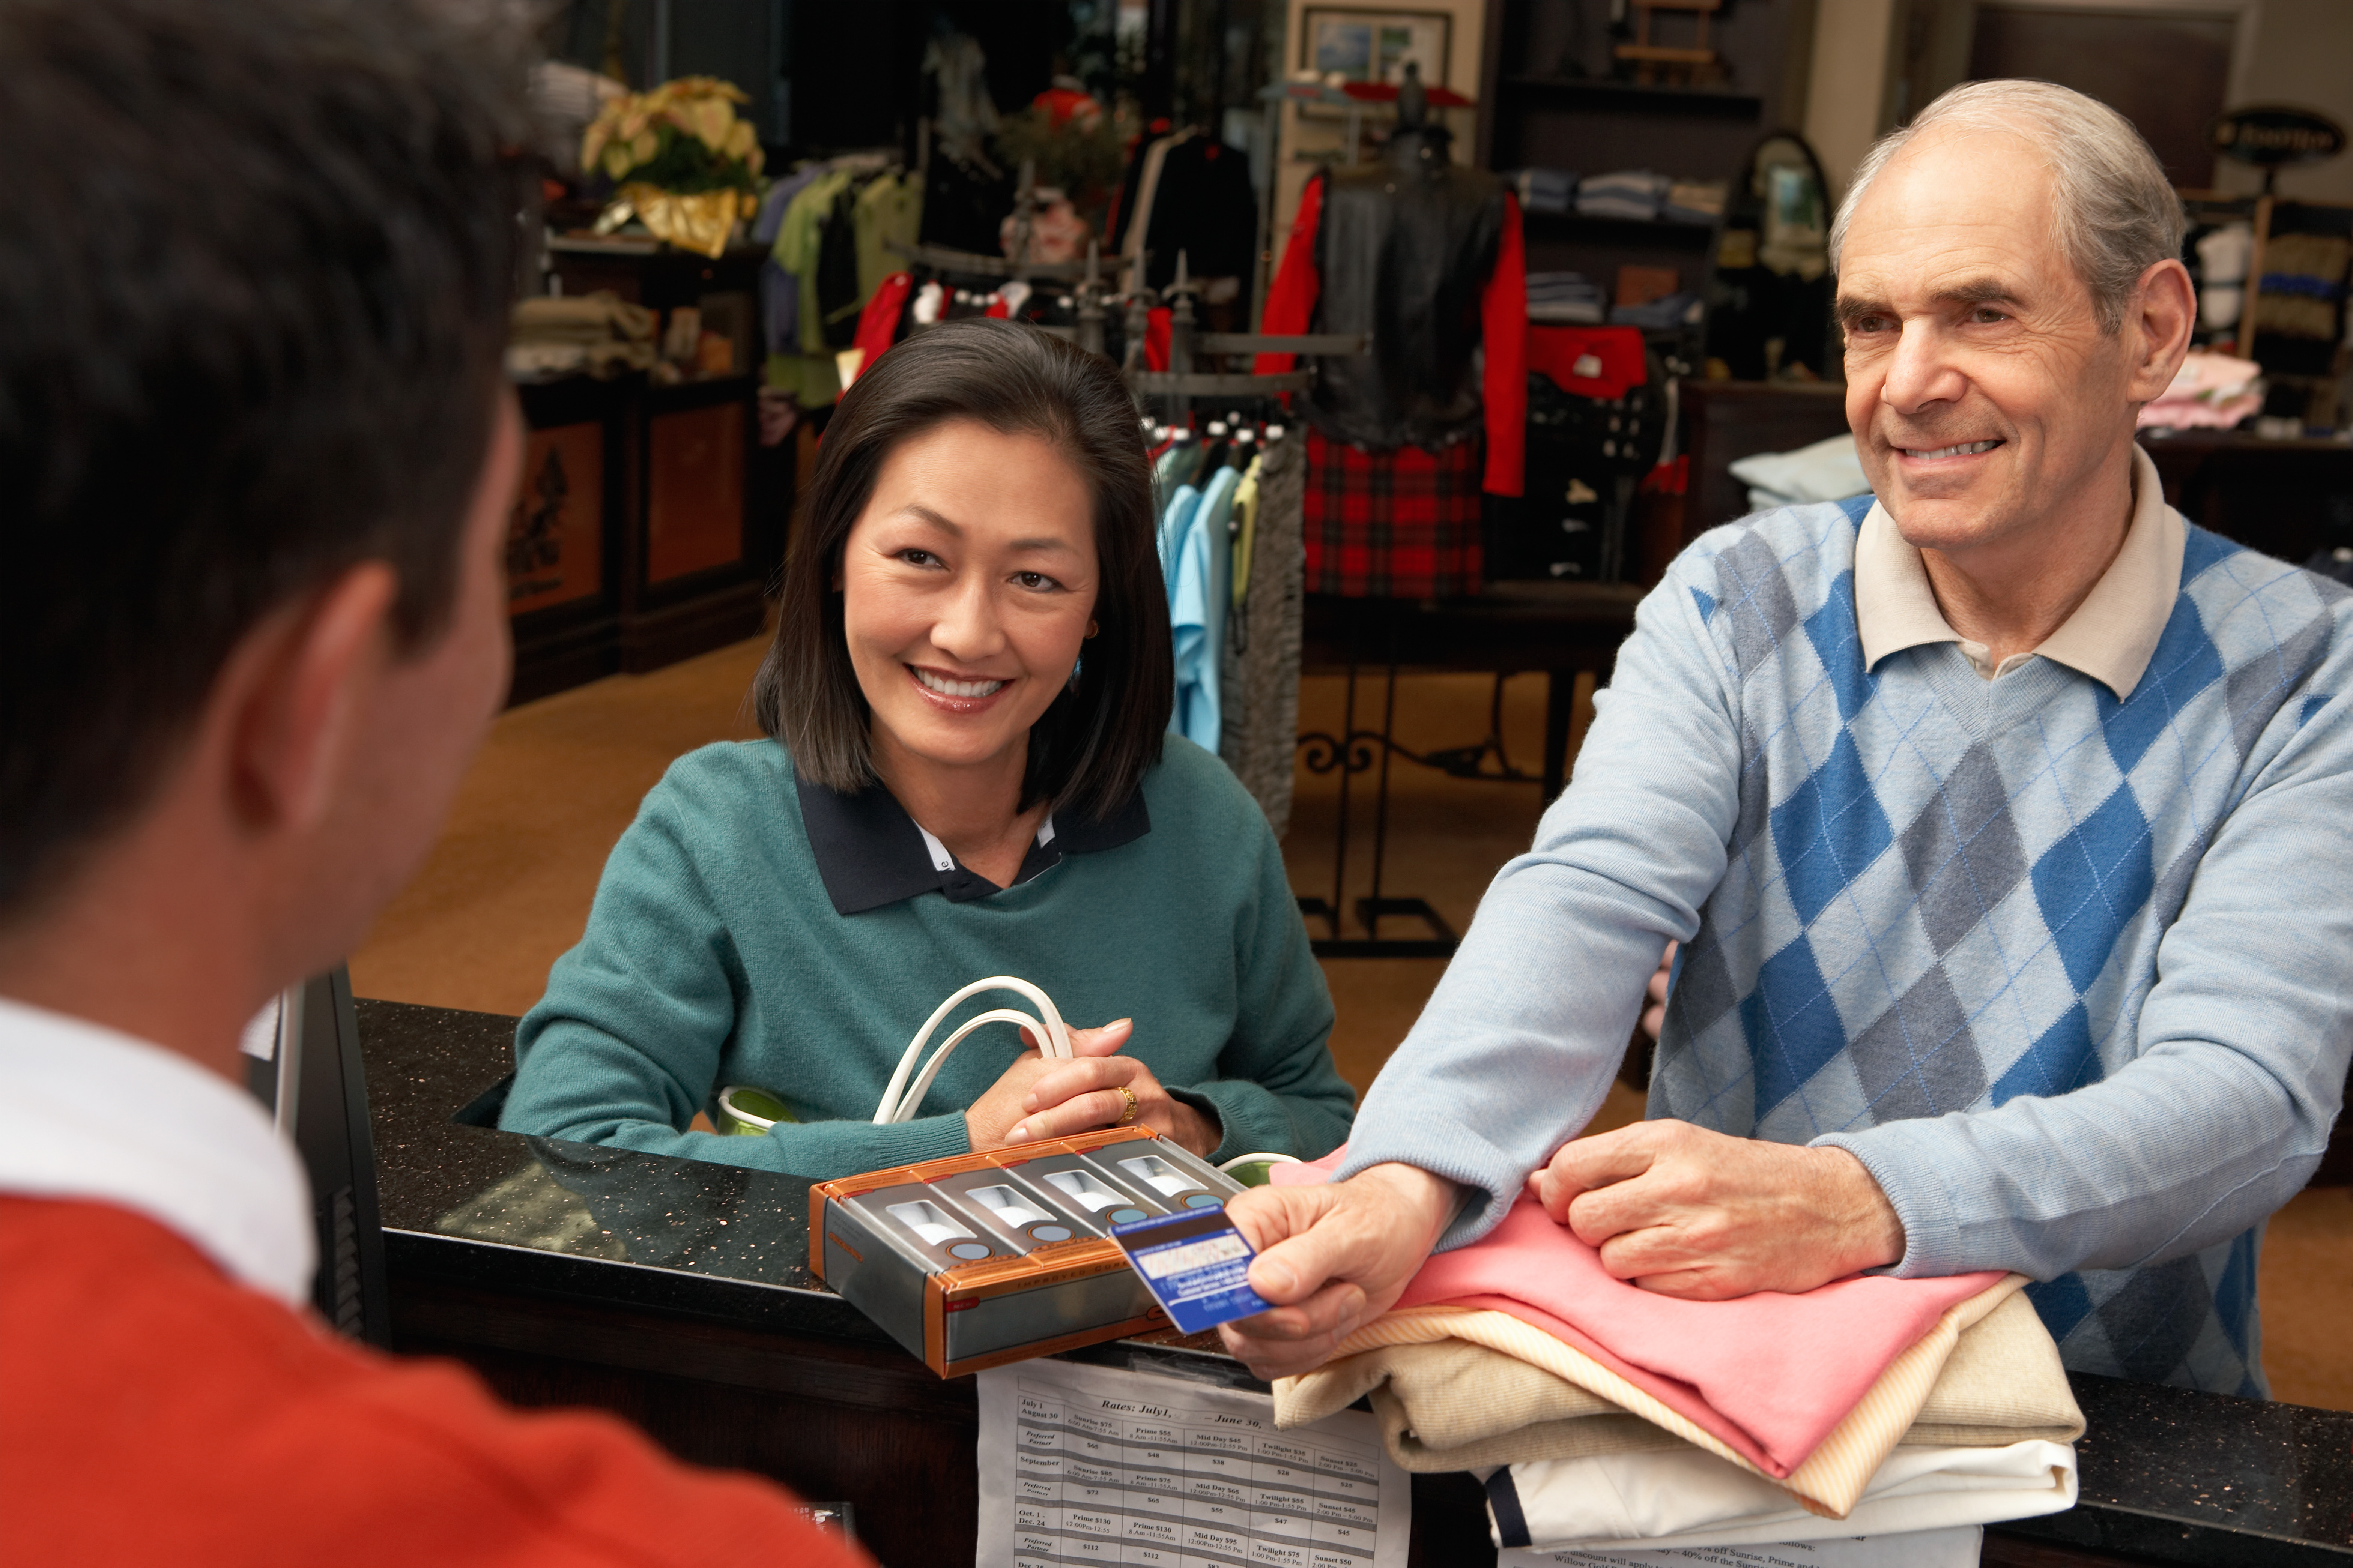 Couple paying for golf apparel in golf store by credit card at checkout counter